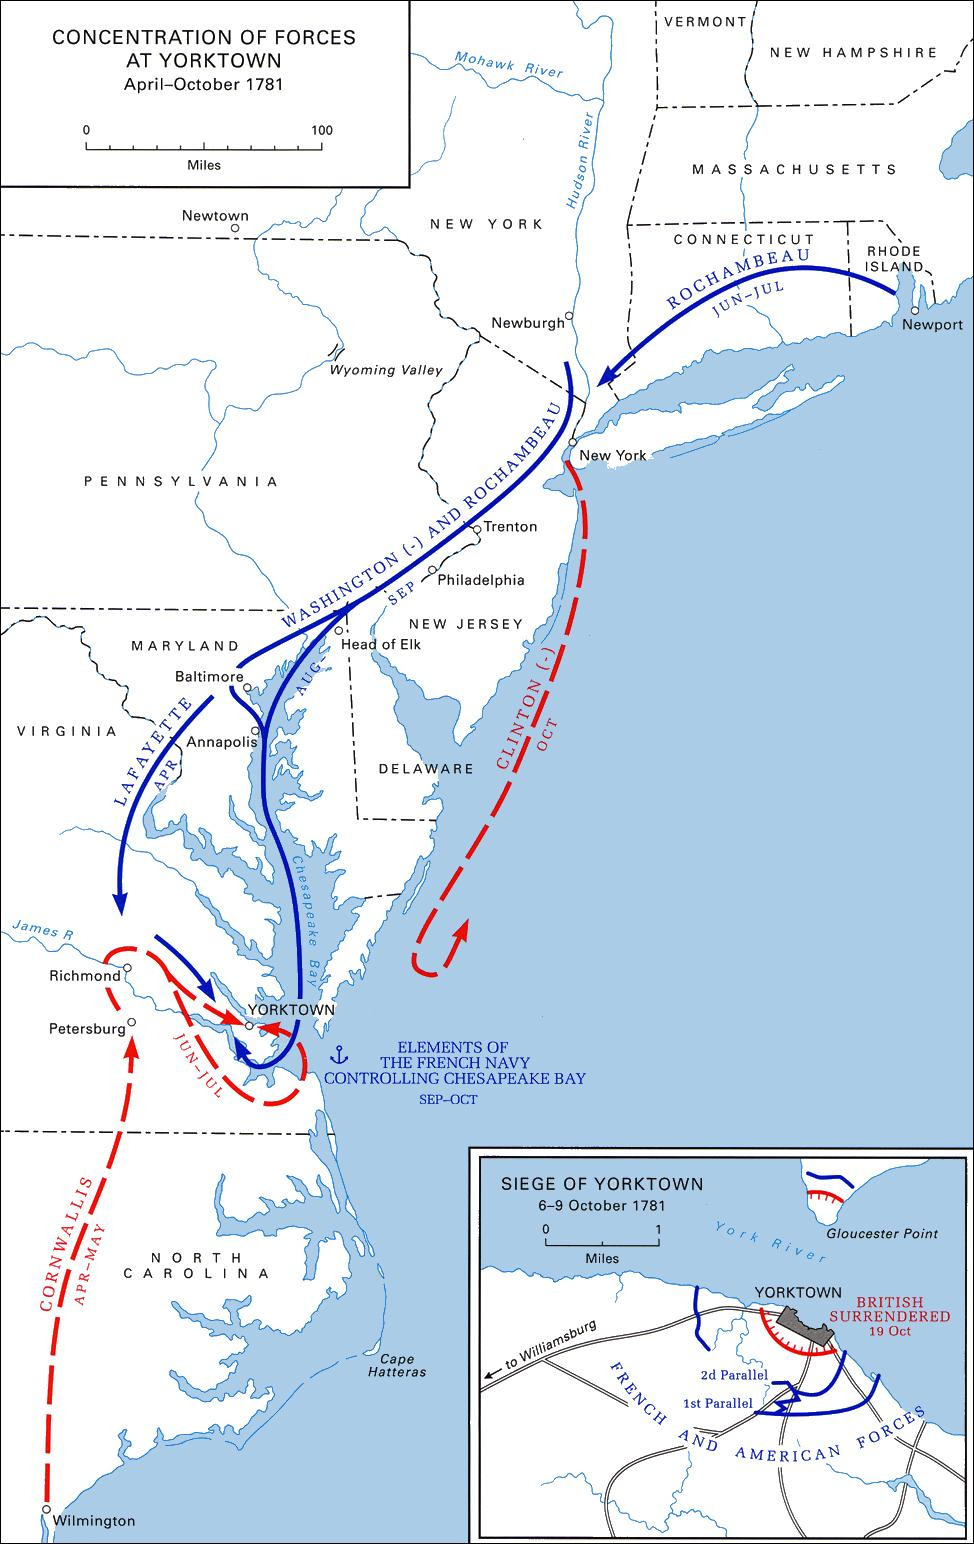 Concentration of forces at yorktown map.jpg